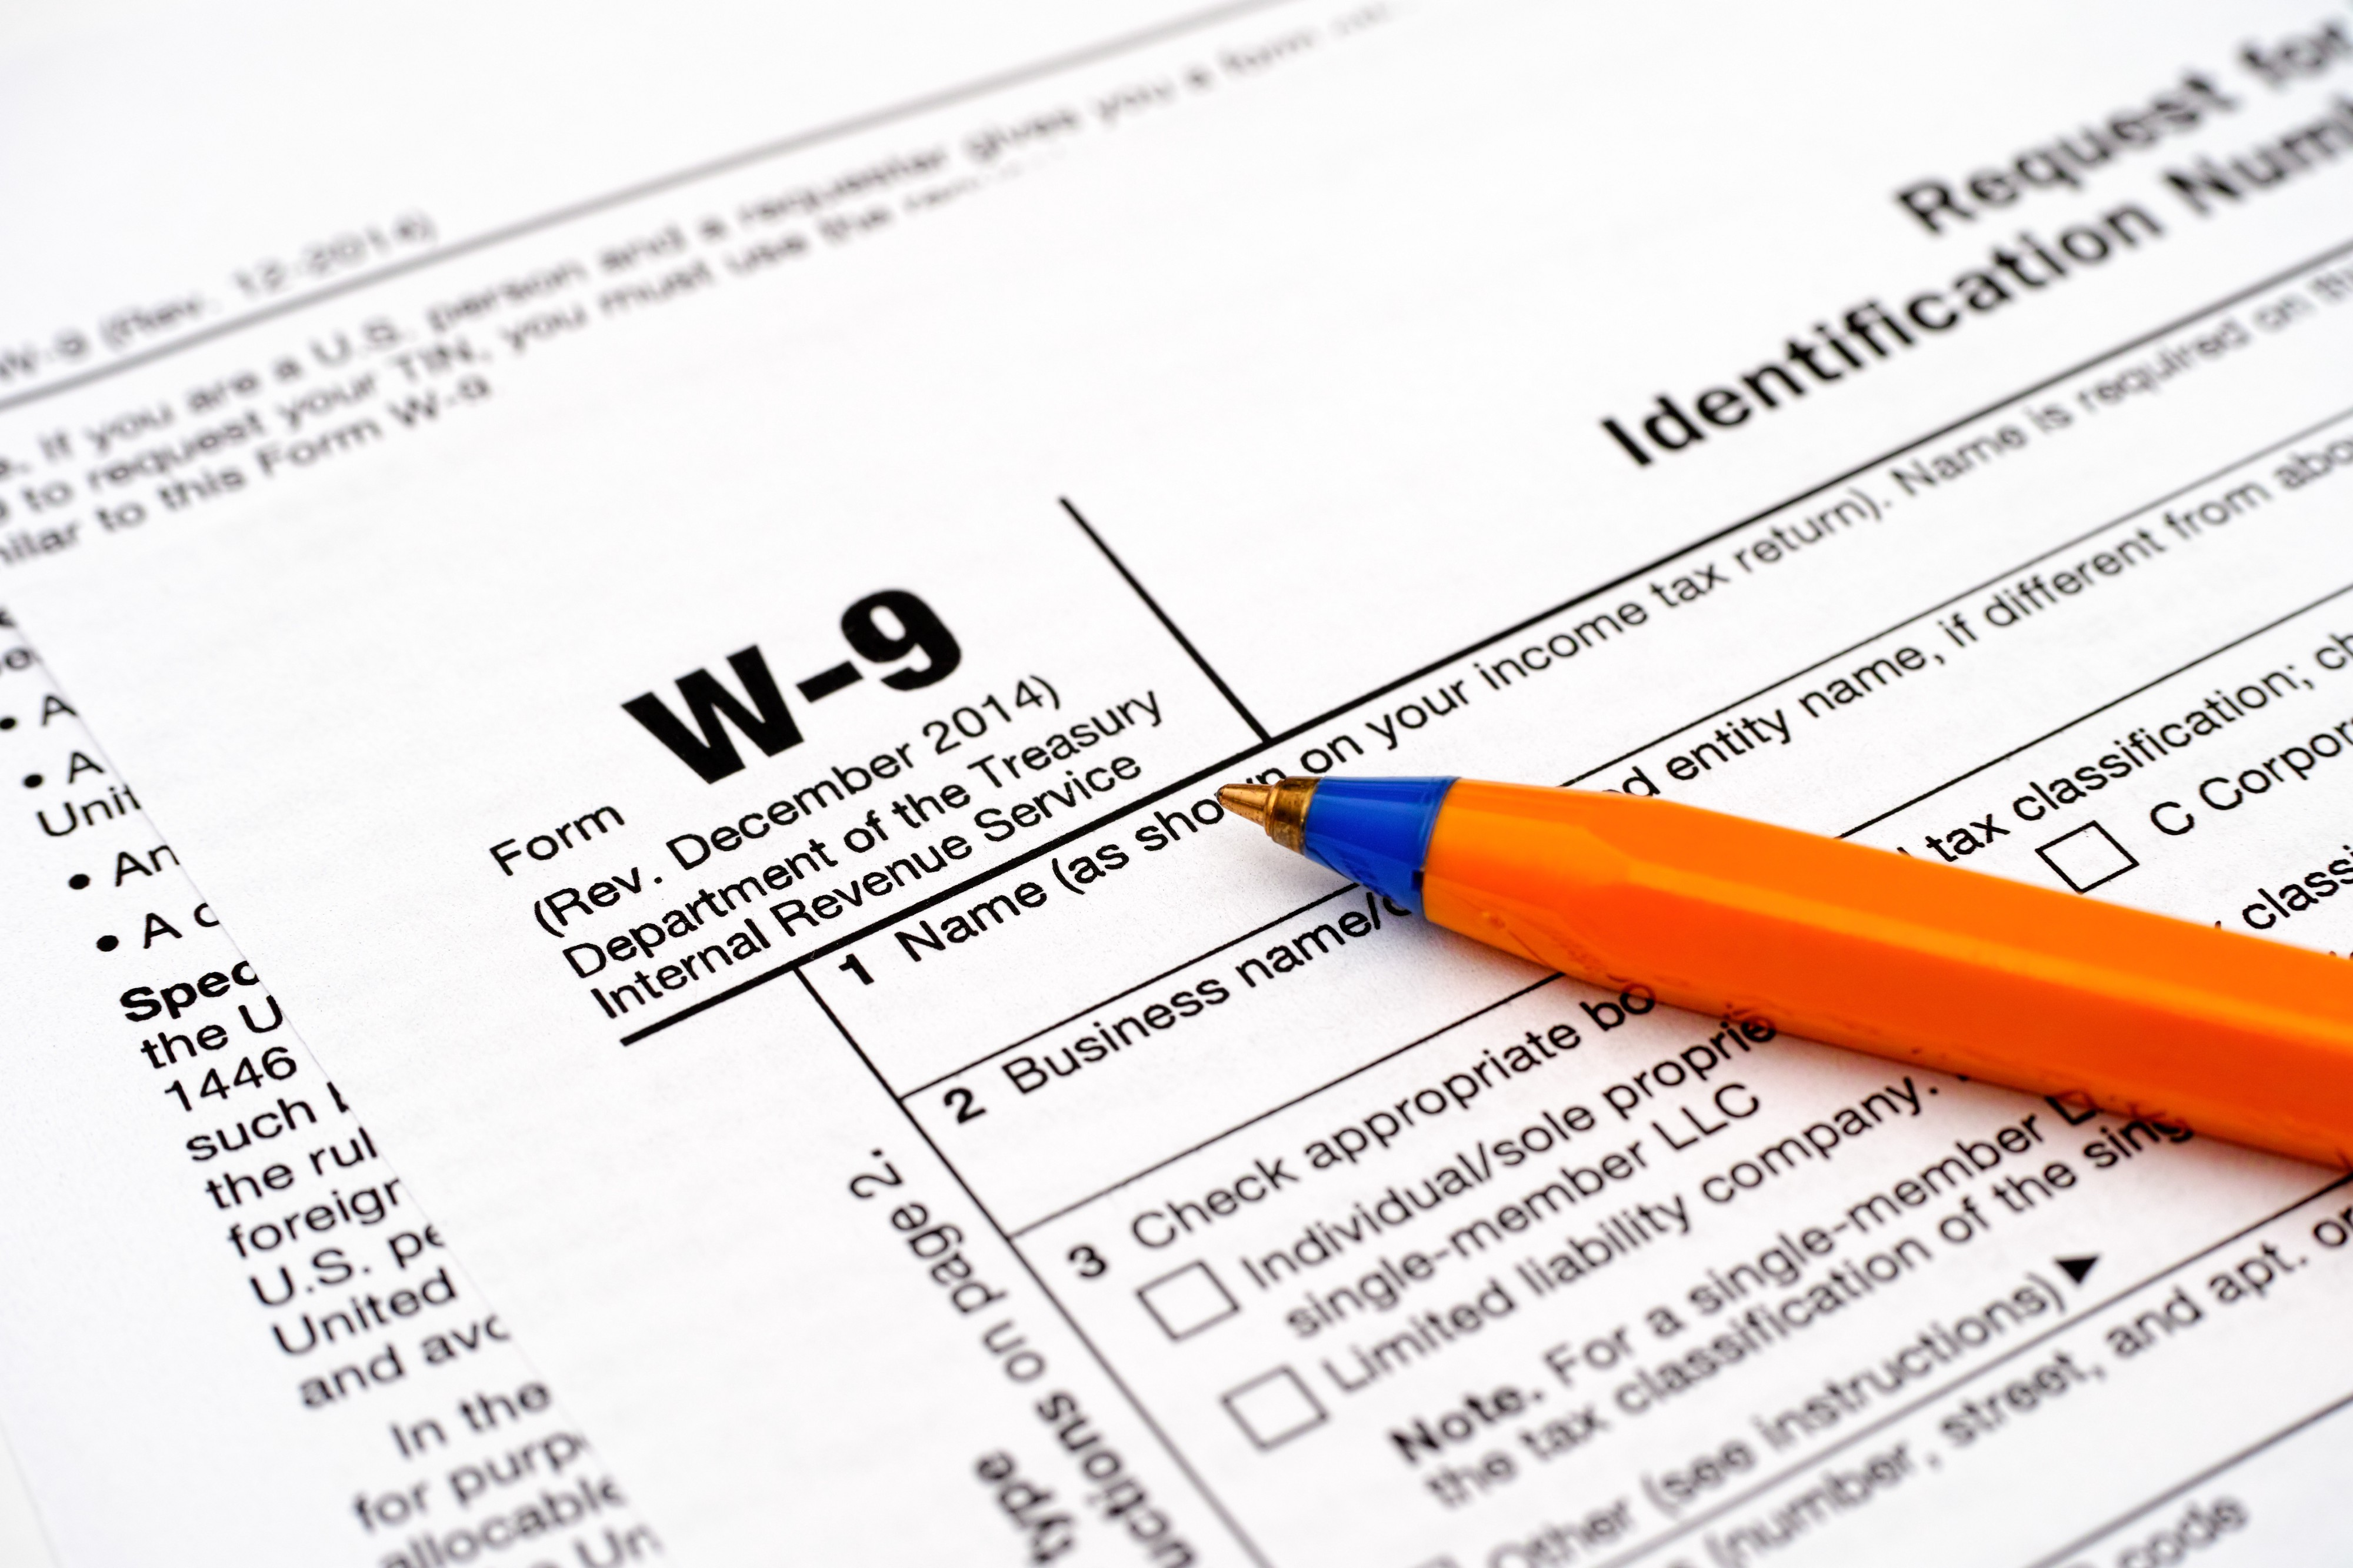 what is form w-9 used for  What is the purpose of Form W-7? - John Croyle - Medium